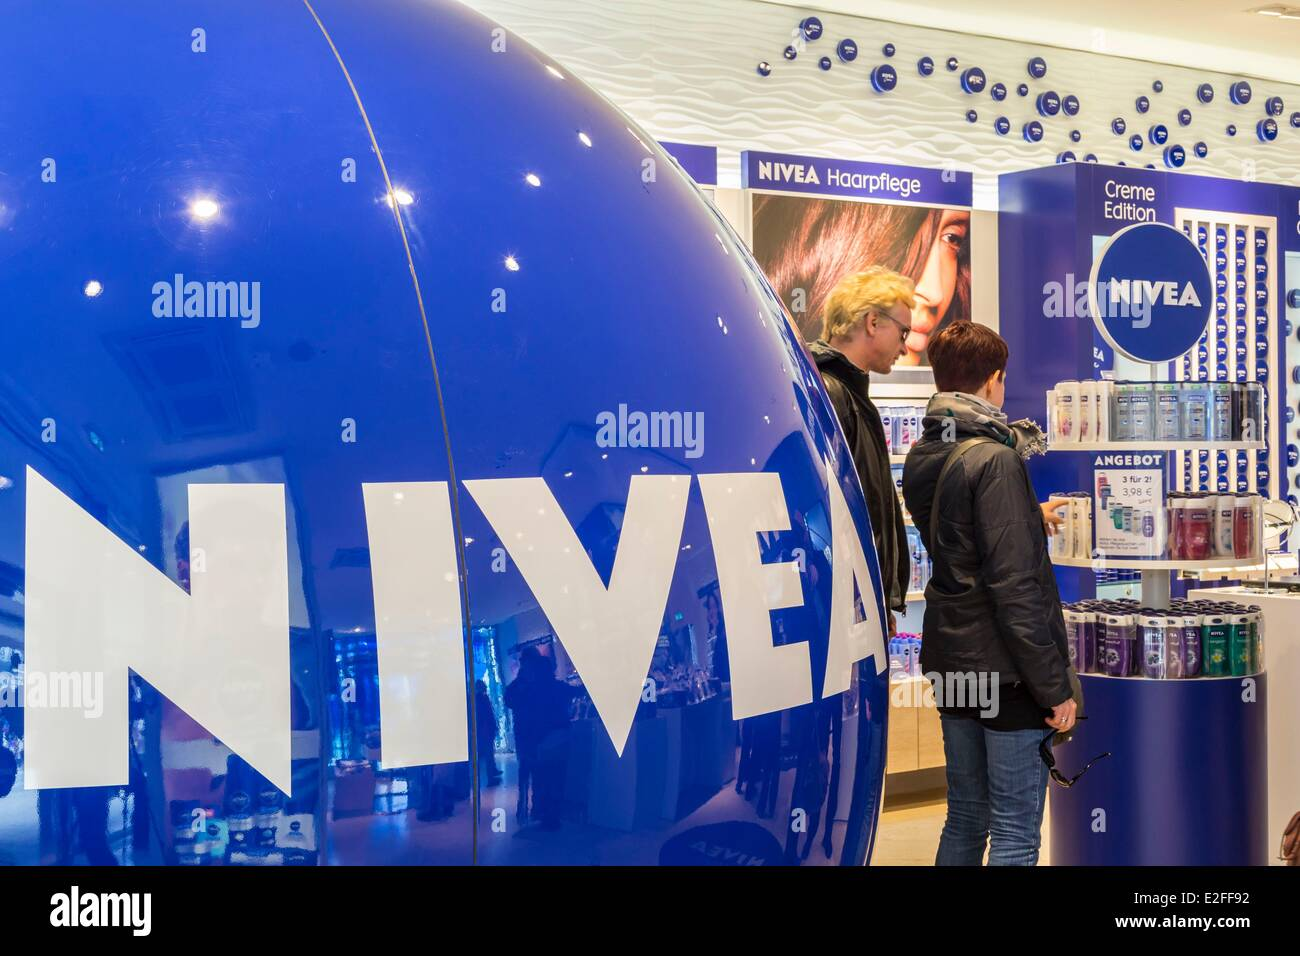 Germany, Hamburg, Nivea Haus, Nivea brand was founded locally in 1911 and belongs to the German group Beiersdorf - Stock Image